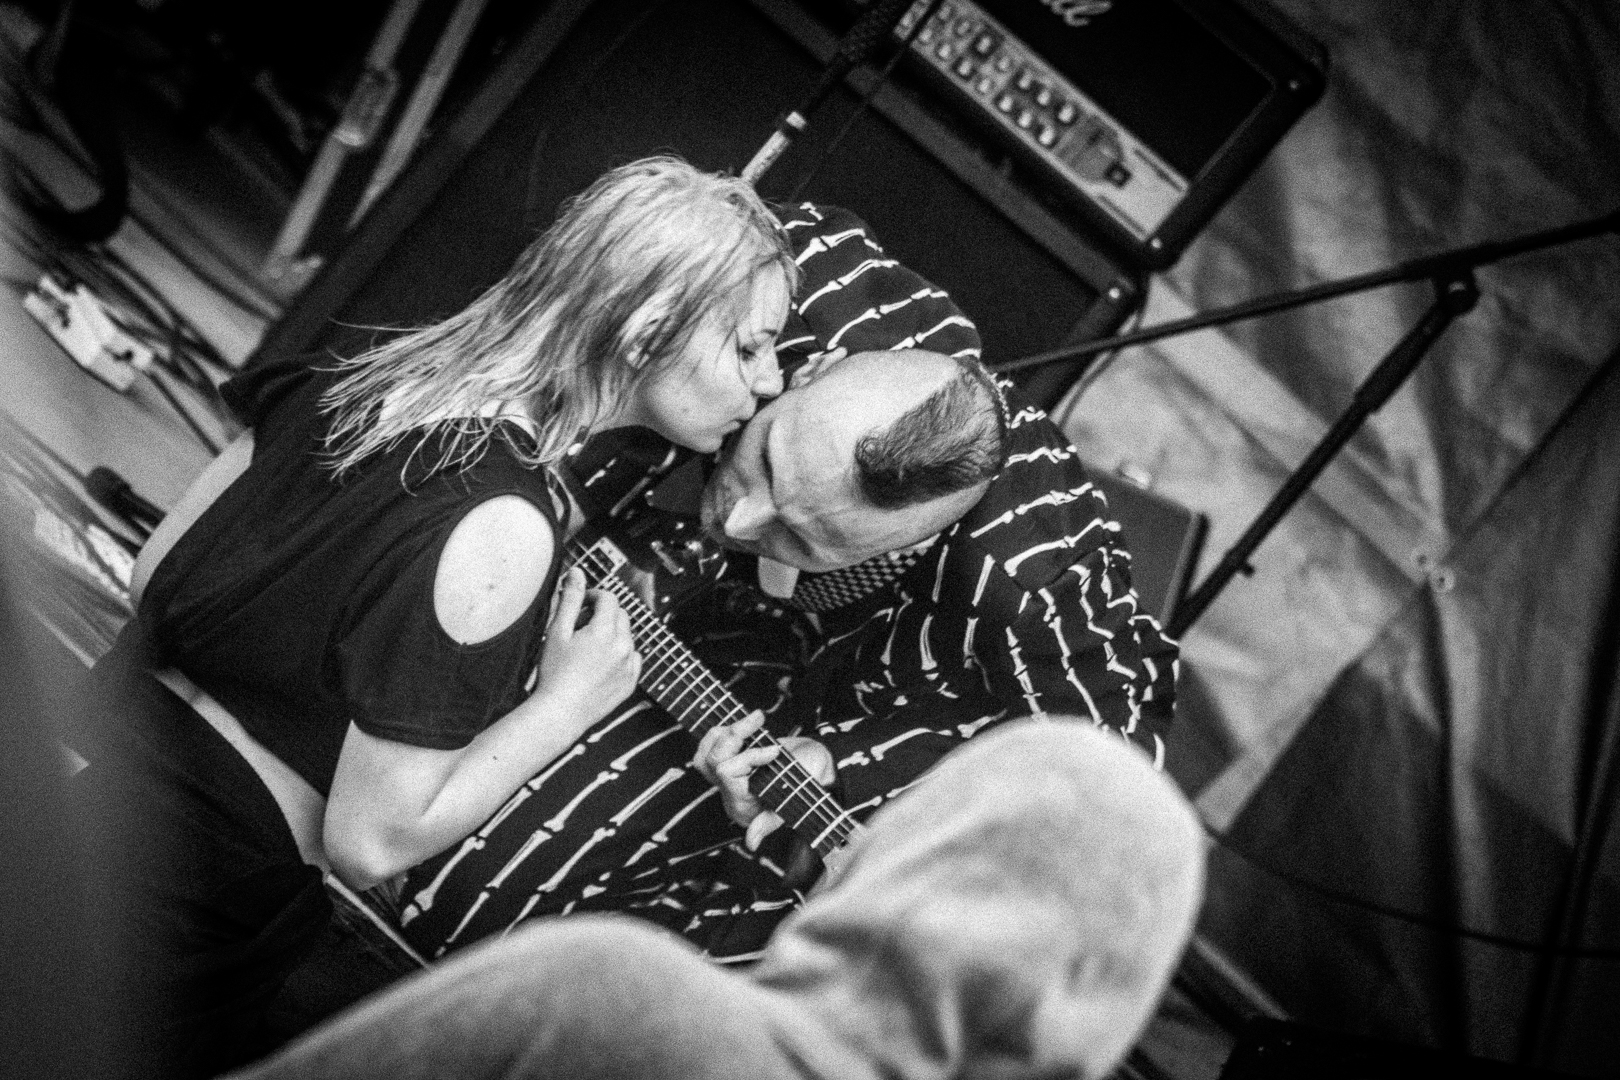 A young female member of the audience who had been dancing alone in the rain at Mappfest 2017 leans forward to give Baz Francis (lead singer of Magic 8 Ball) a kiss on the right cheek at the edge of the stage as the band continue to play